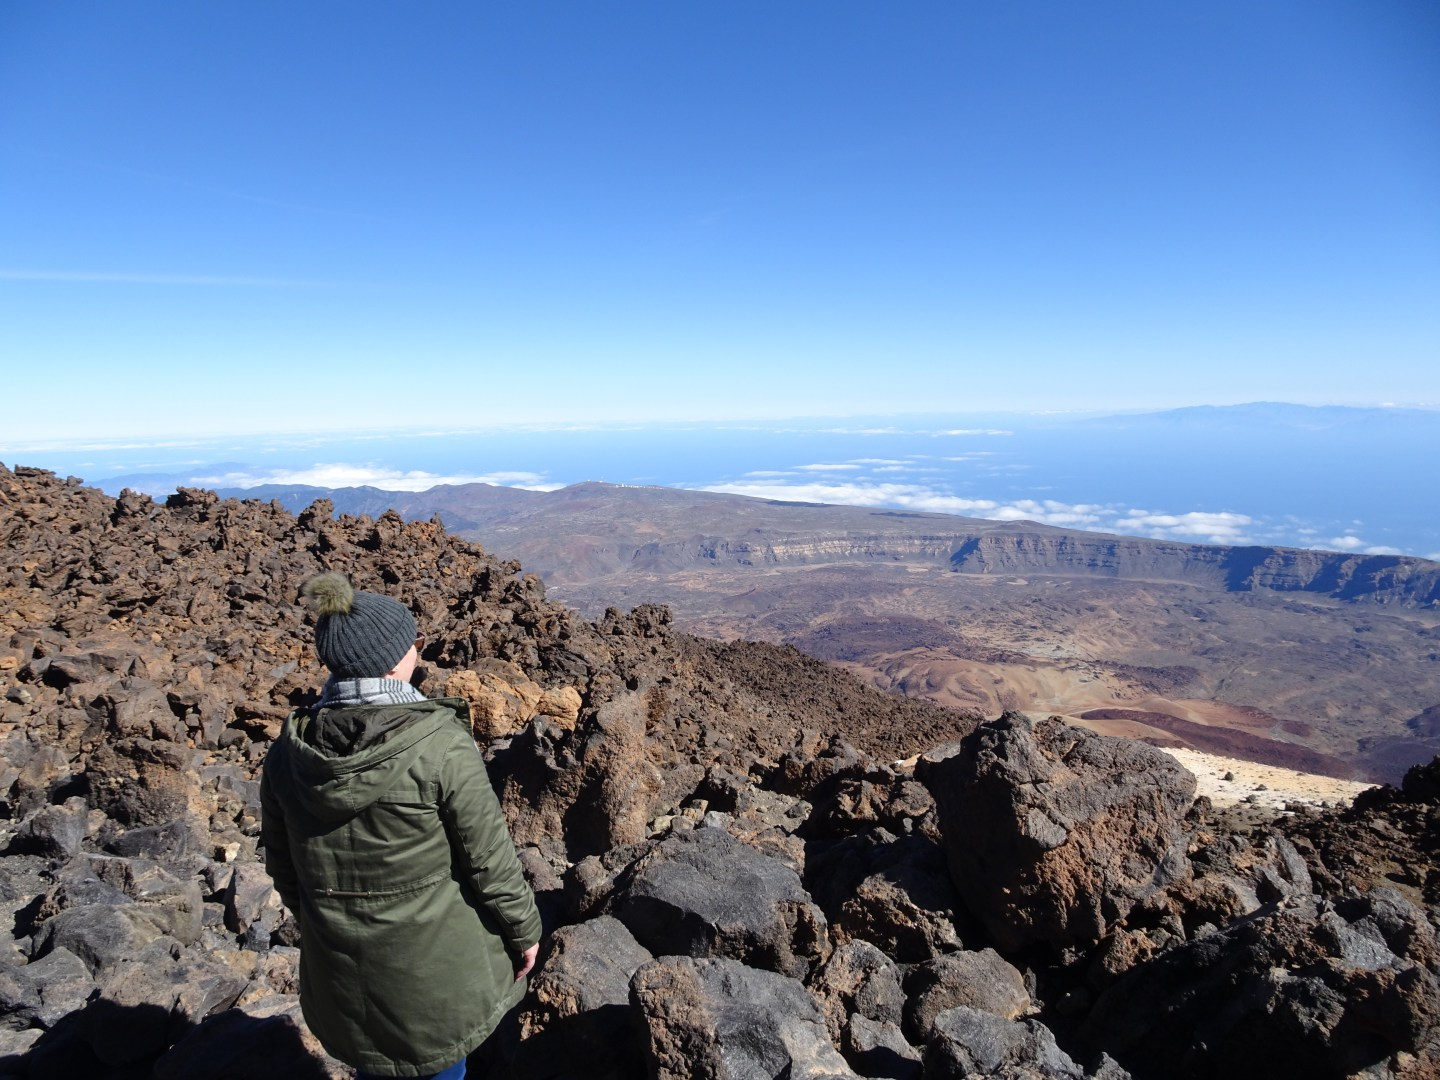 View above the clouds on Teide